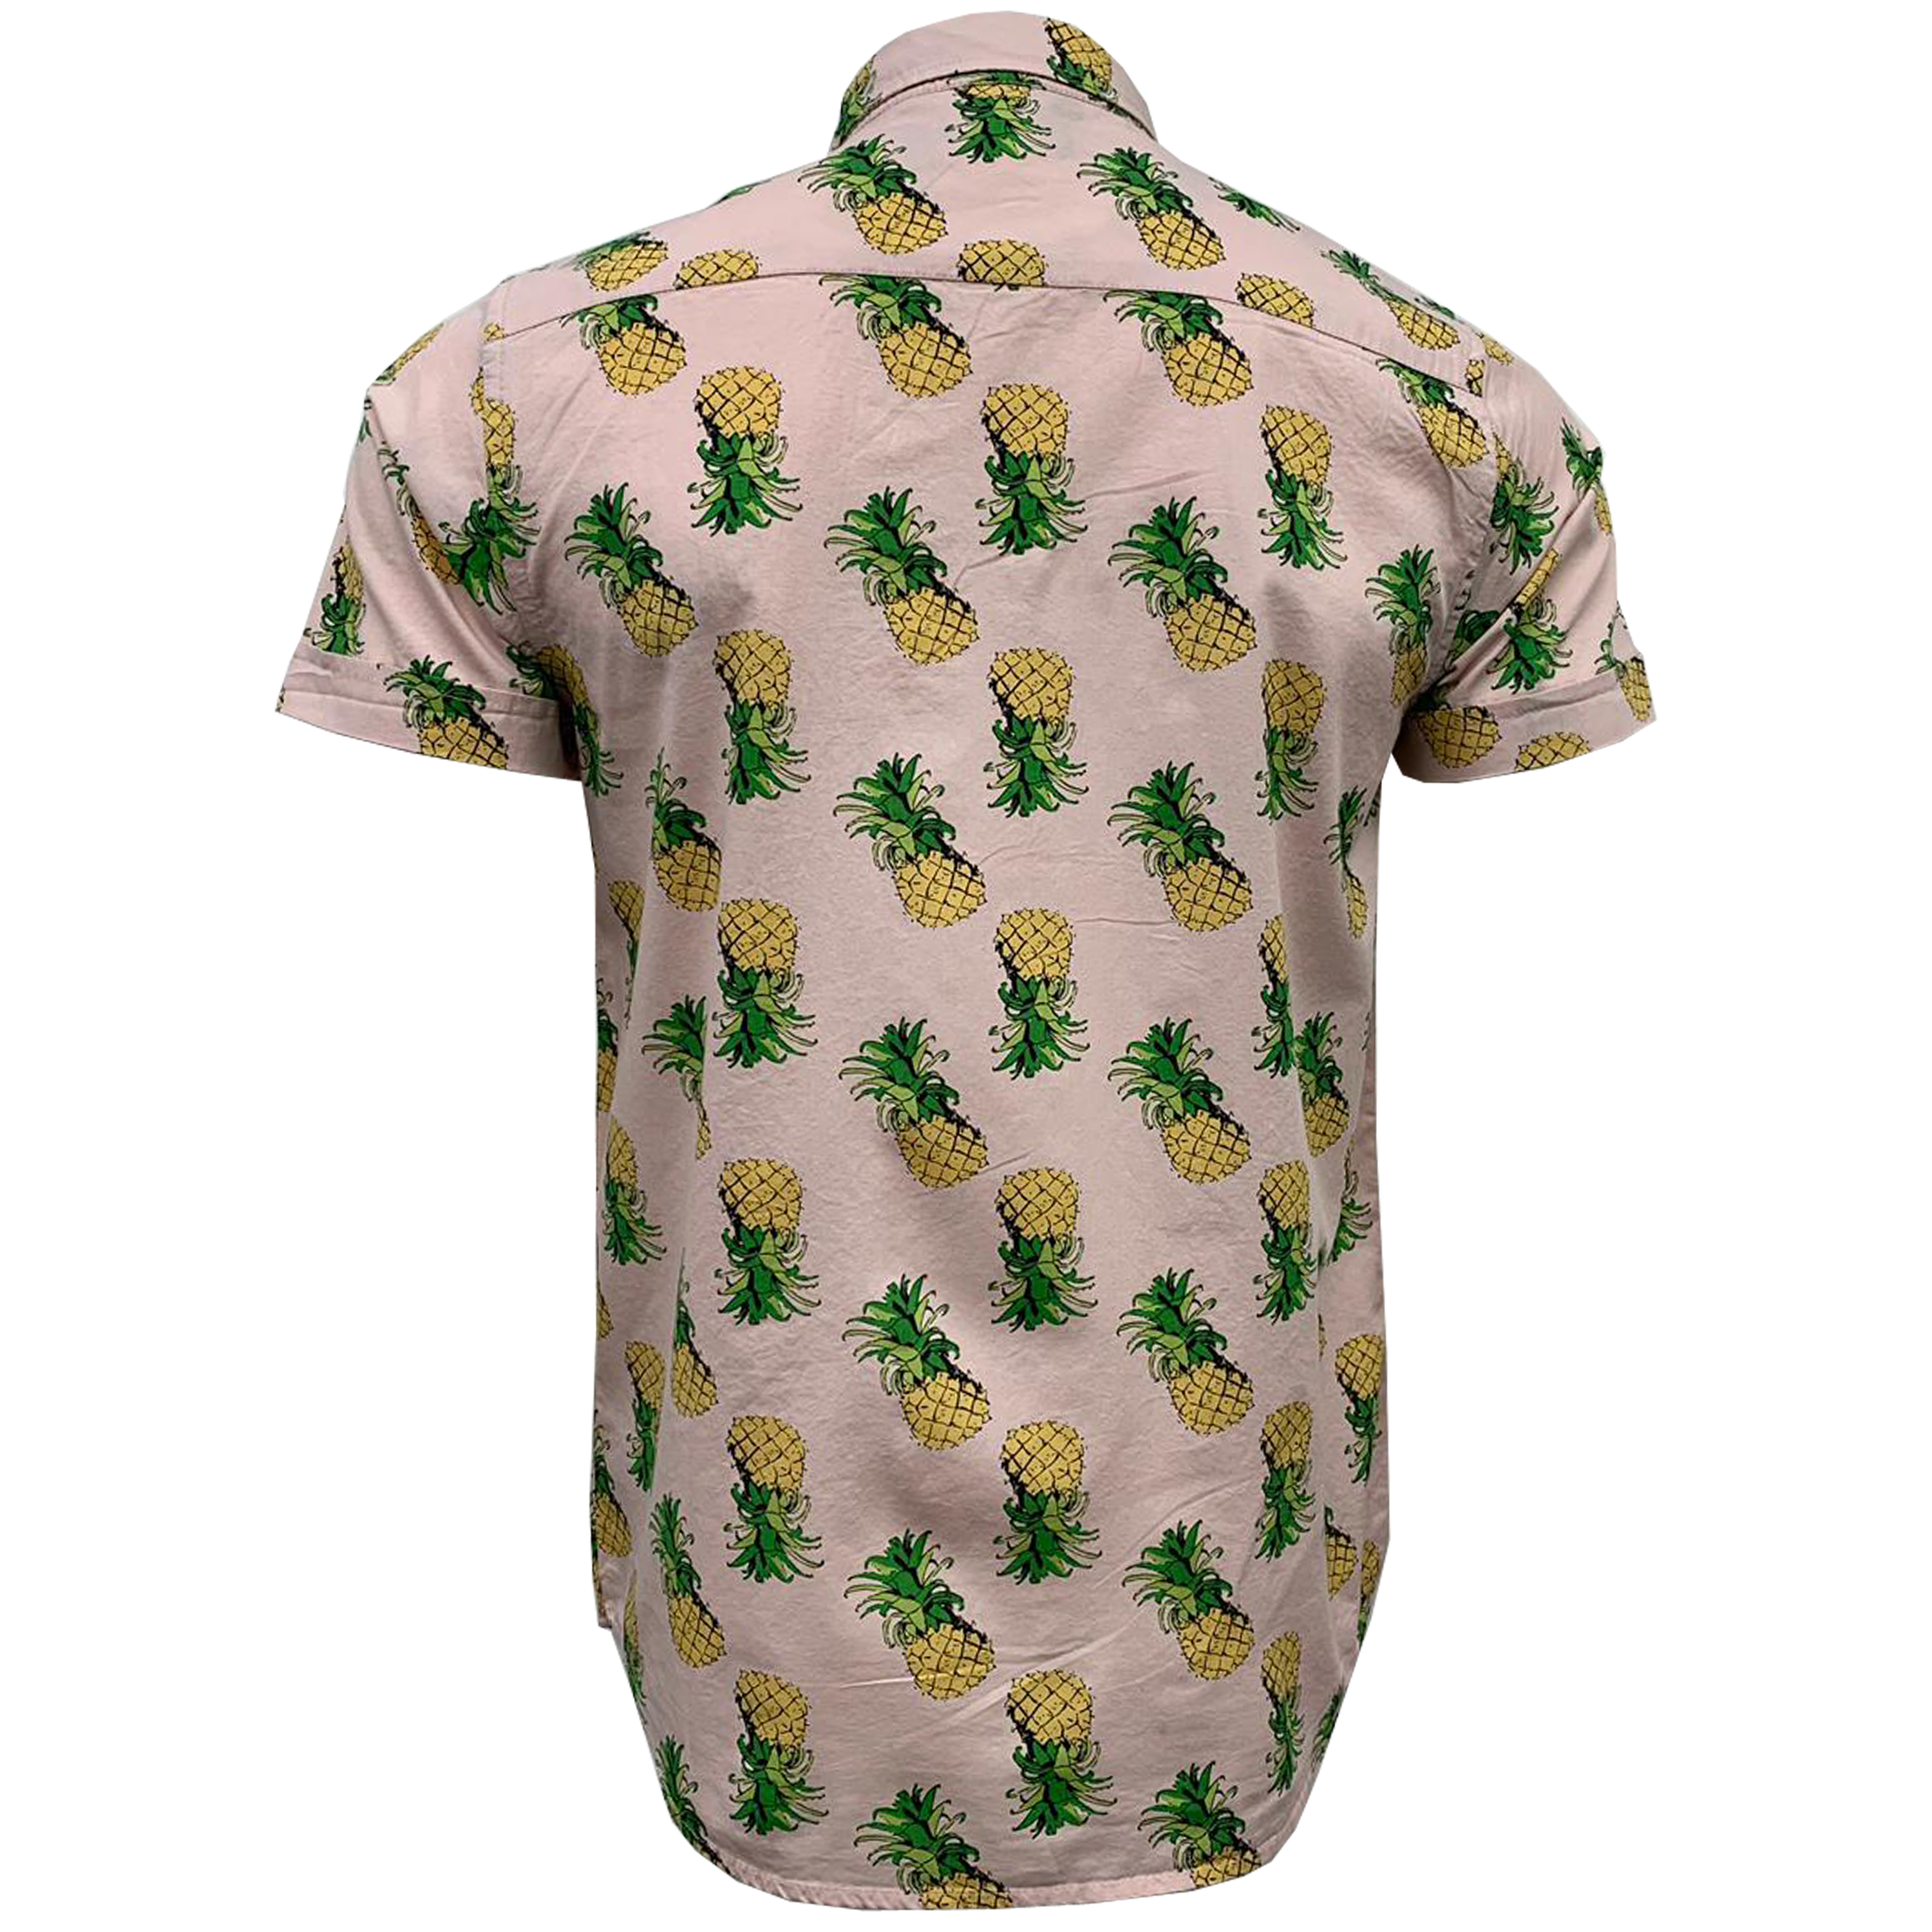 Mens-Cotton-Shirt-Brave-Soul-Pineapple-Can-Printed-Short-Sleeved-Casual-Summer thumbnail 9